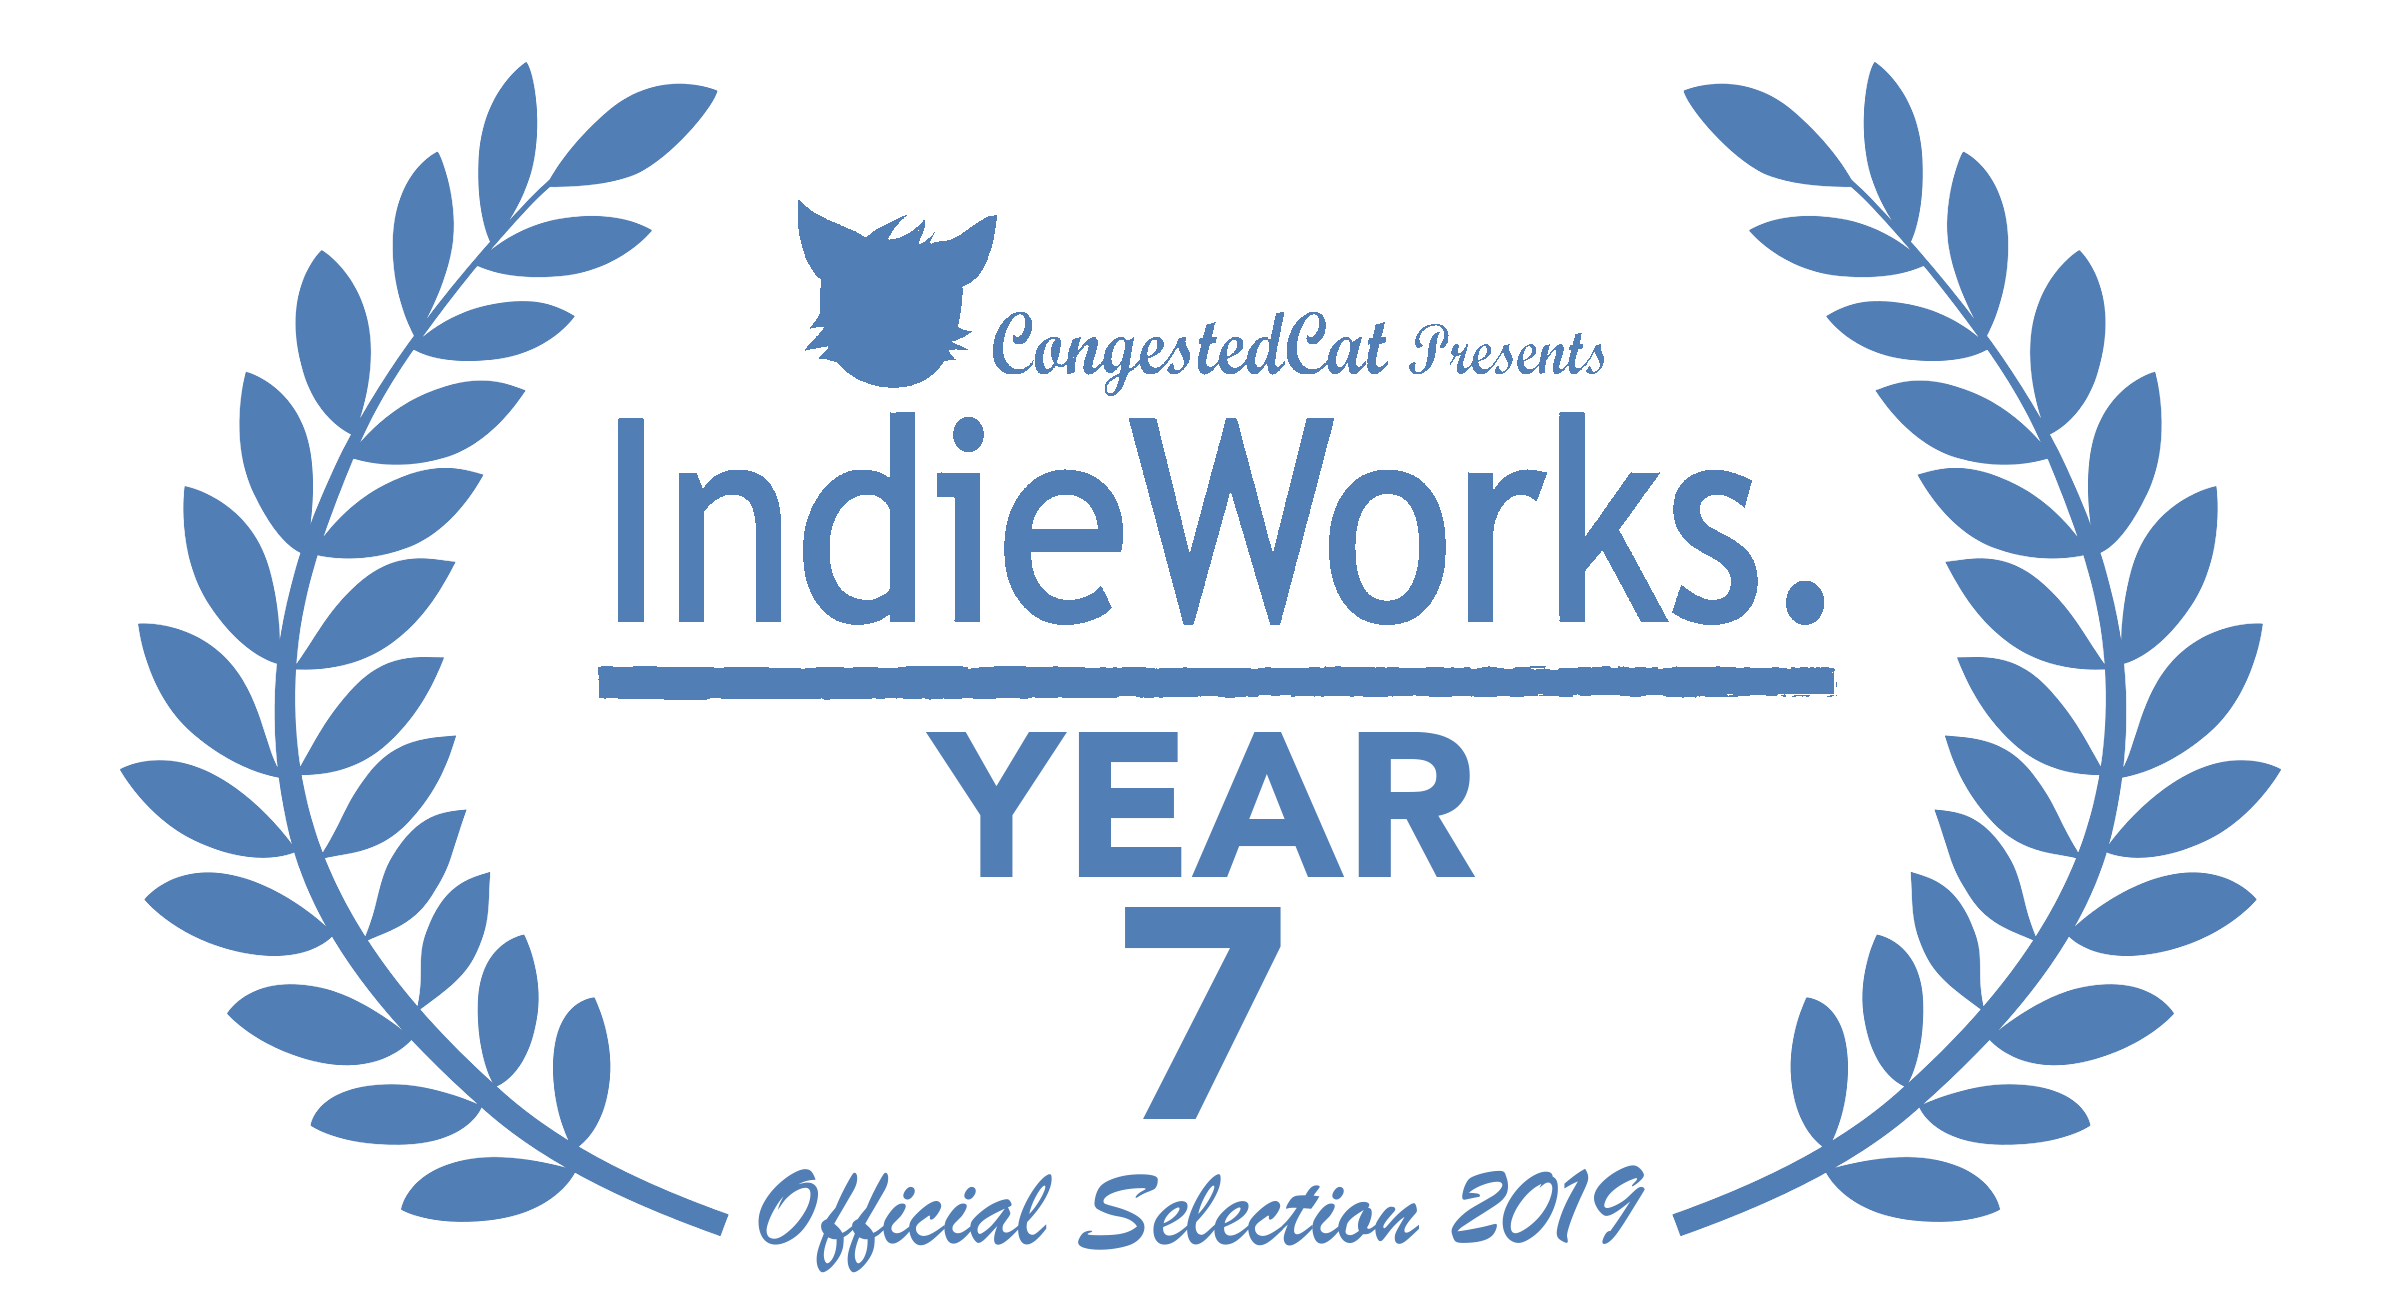 Year 7 - Official Selection